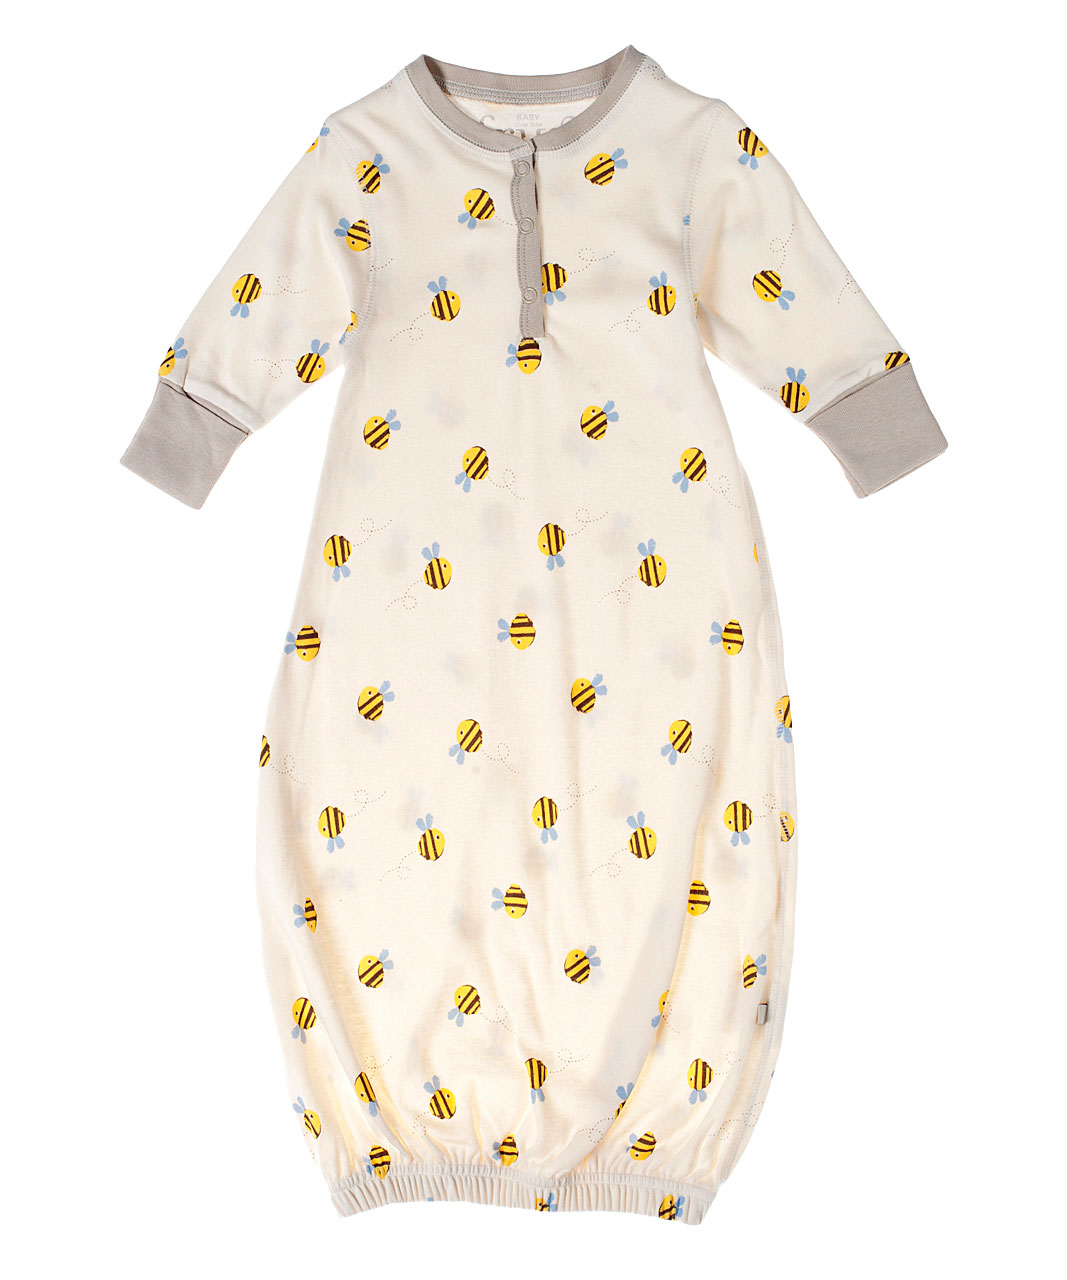 Baby Sleeping Gowns